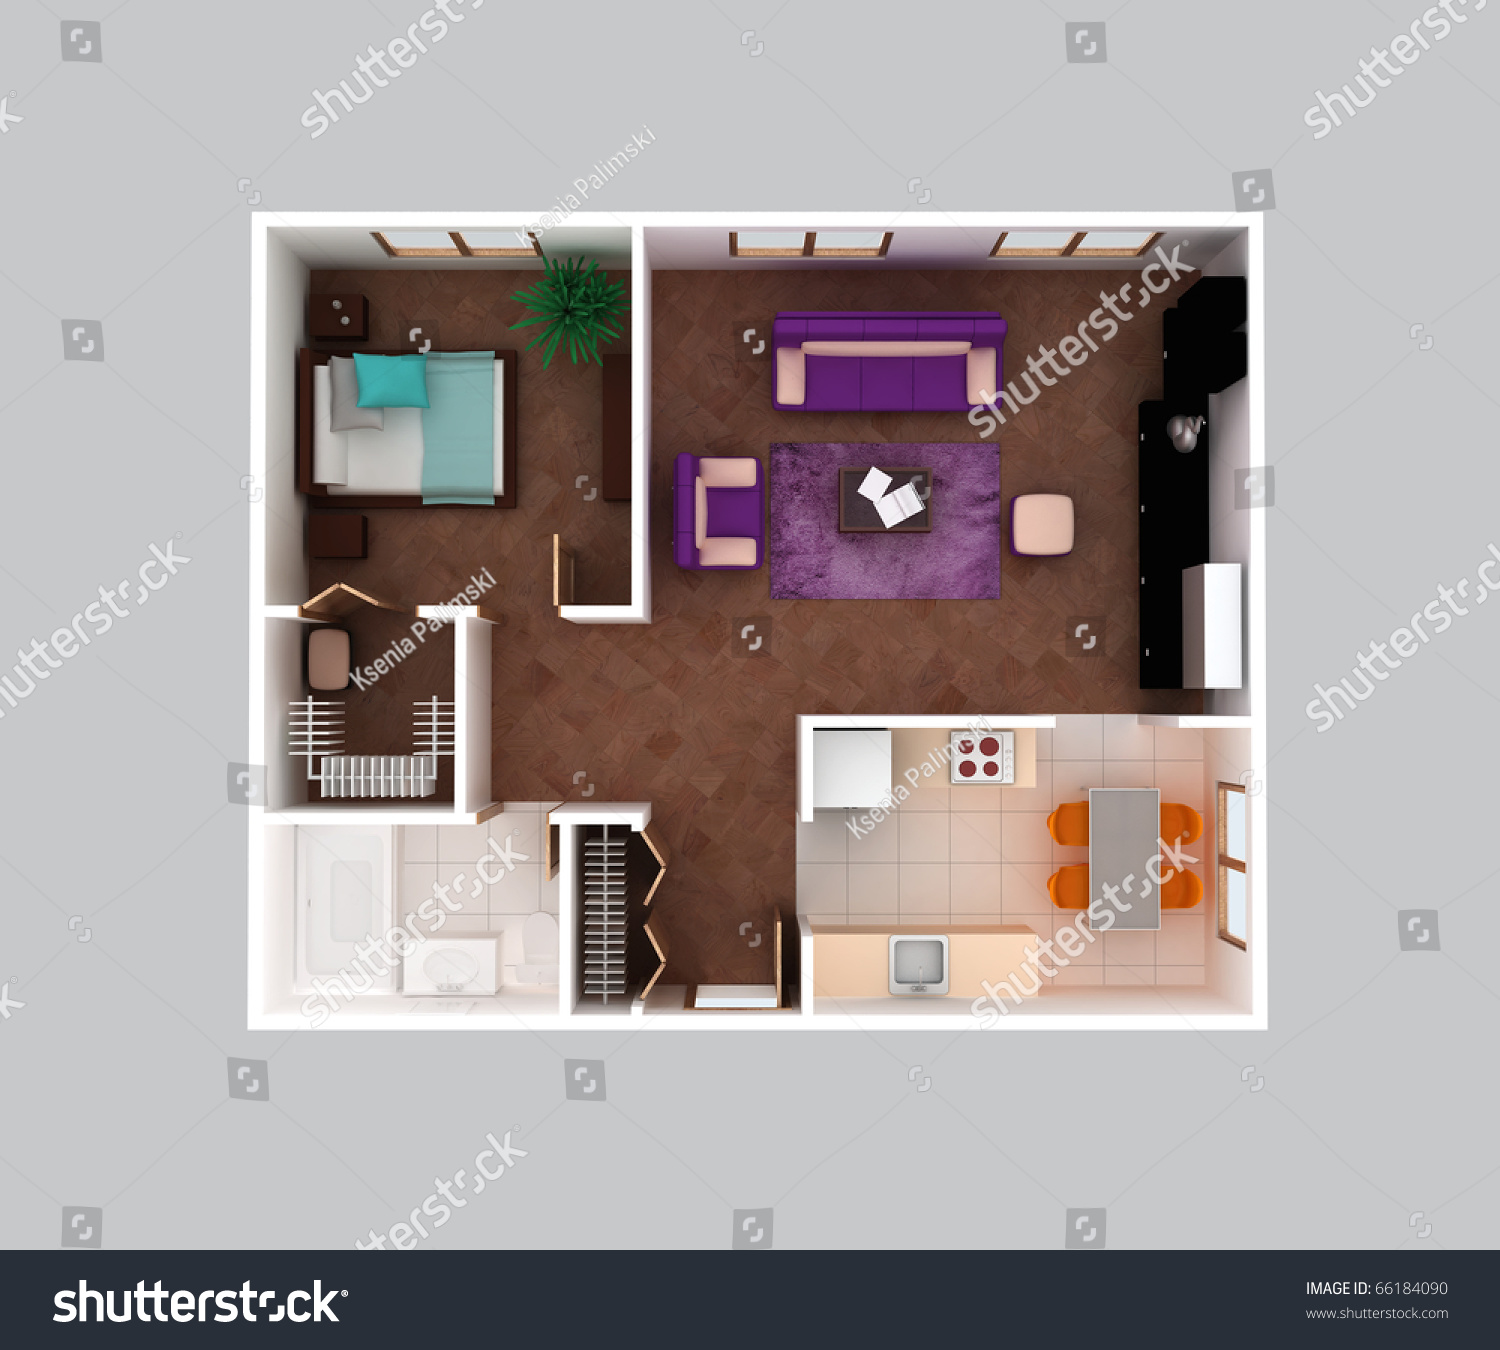 Plan view of a house clear 3d interior design kitchen for Bathroom designs top view